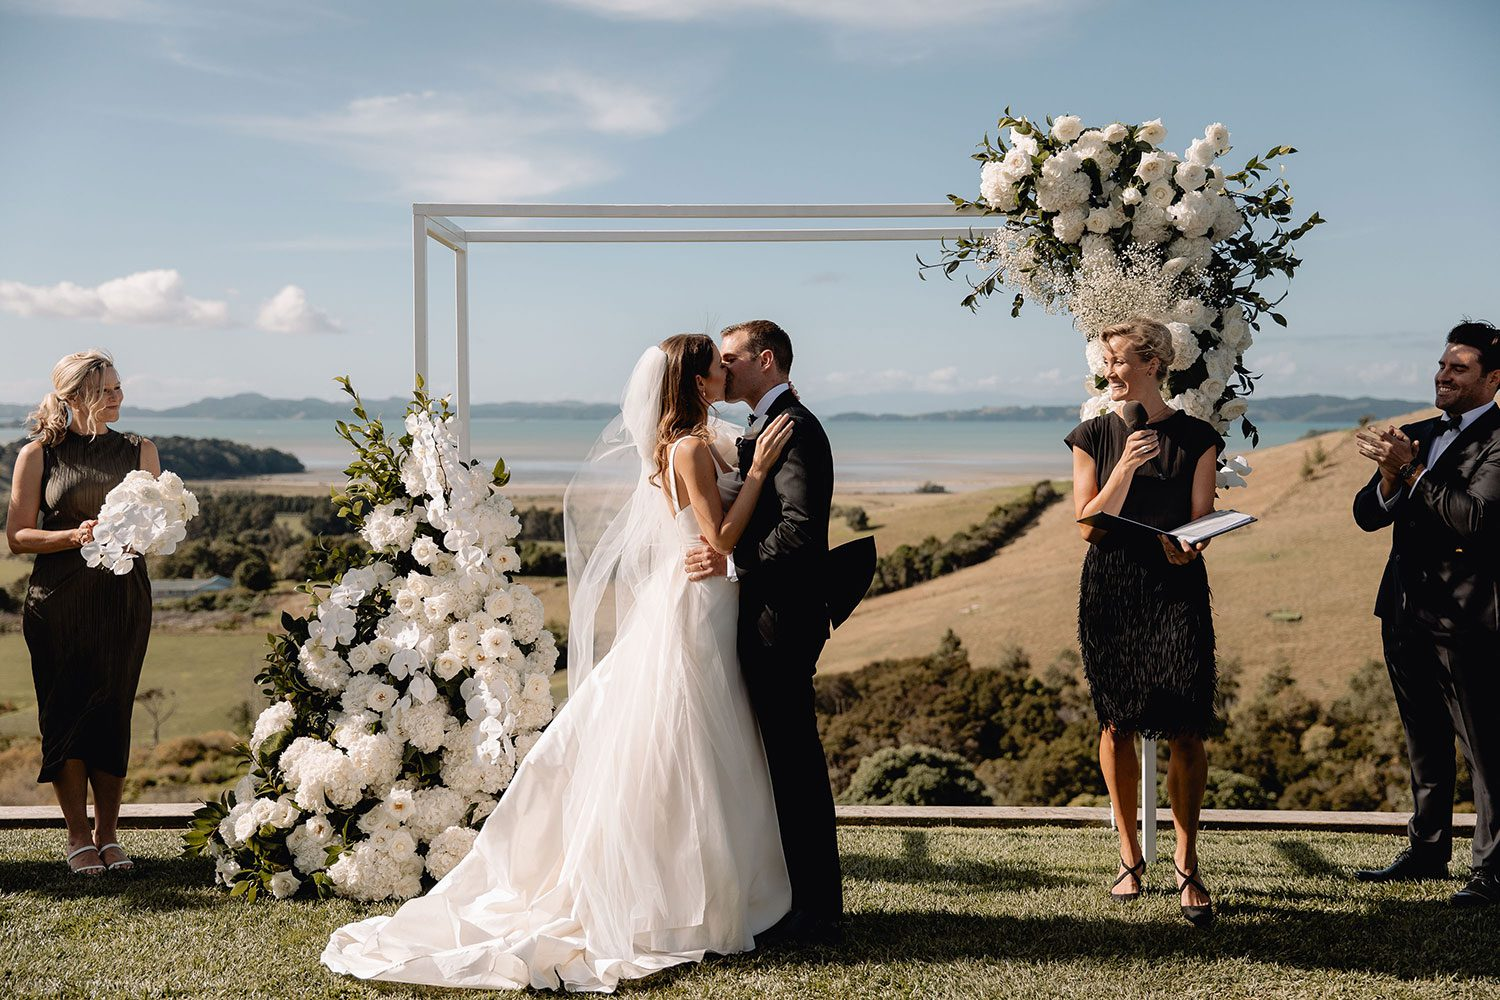 Bride wearing NZ Bespoke Bridal Gown made of silk faile with cowl bodice and detachable overskirt by Vinka Designs - kissing at alter